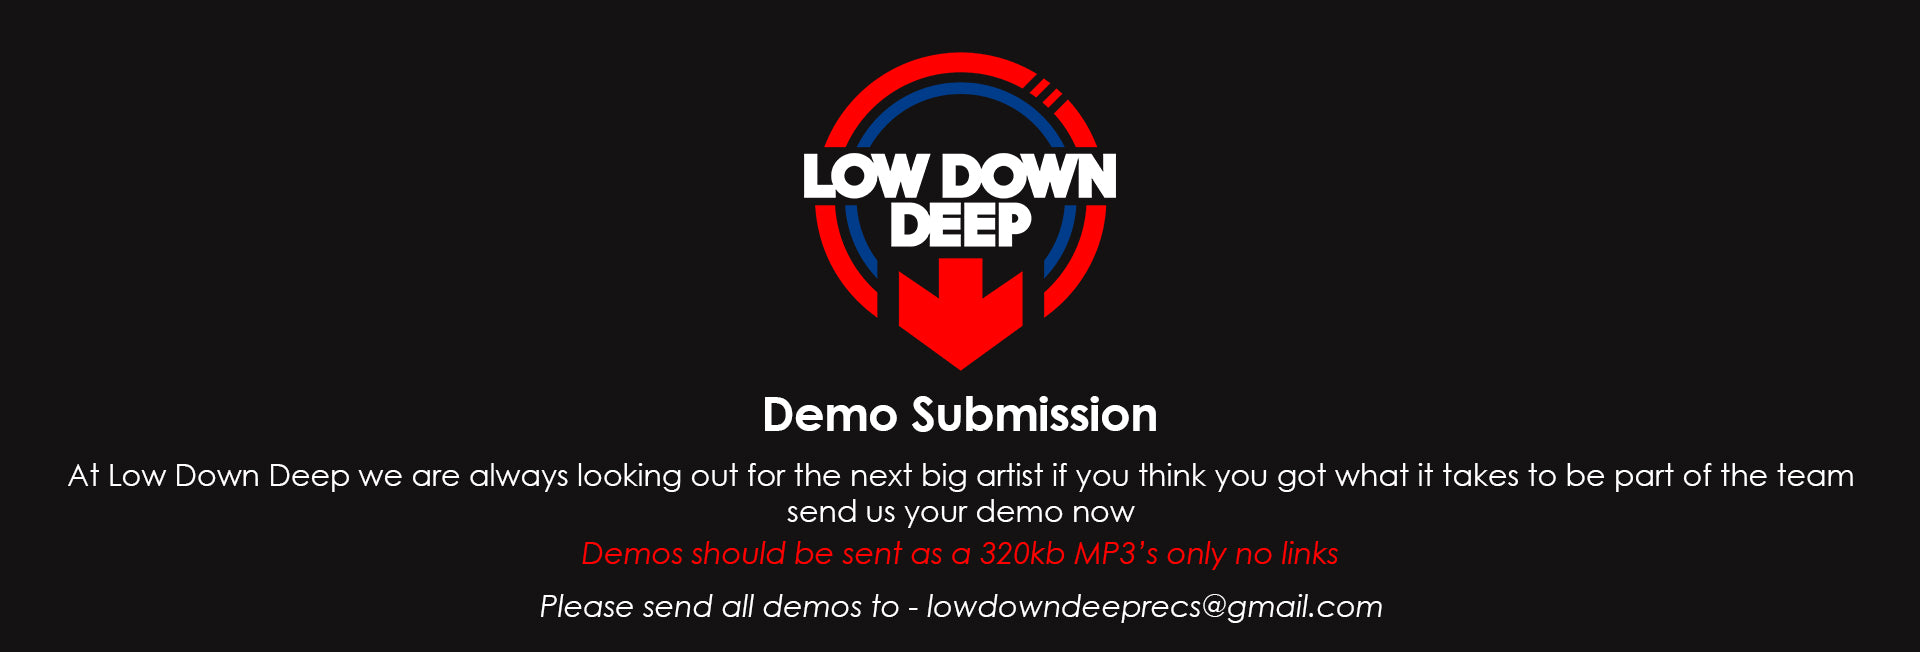 Demo Submisssion